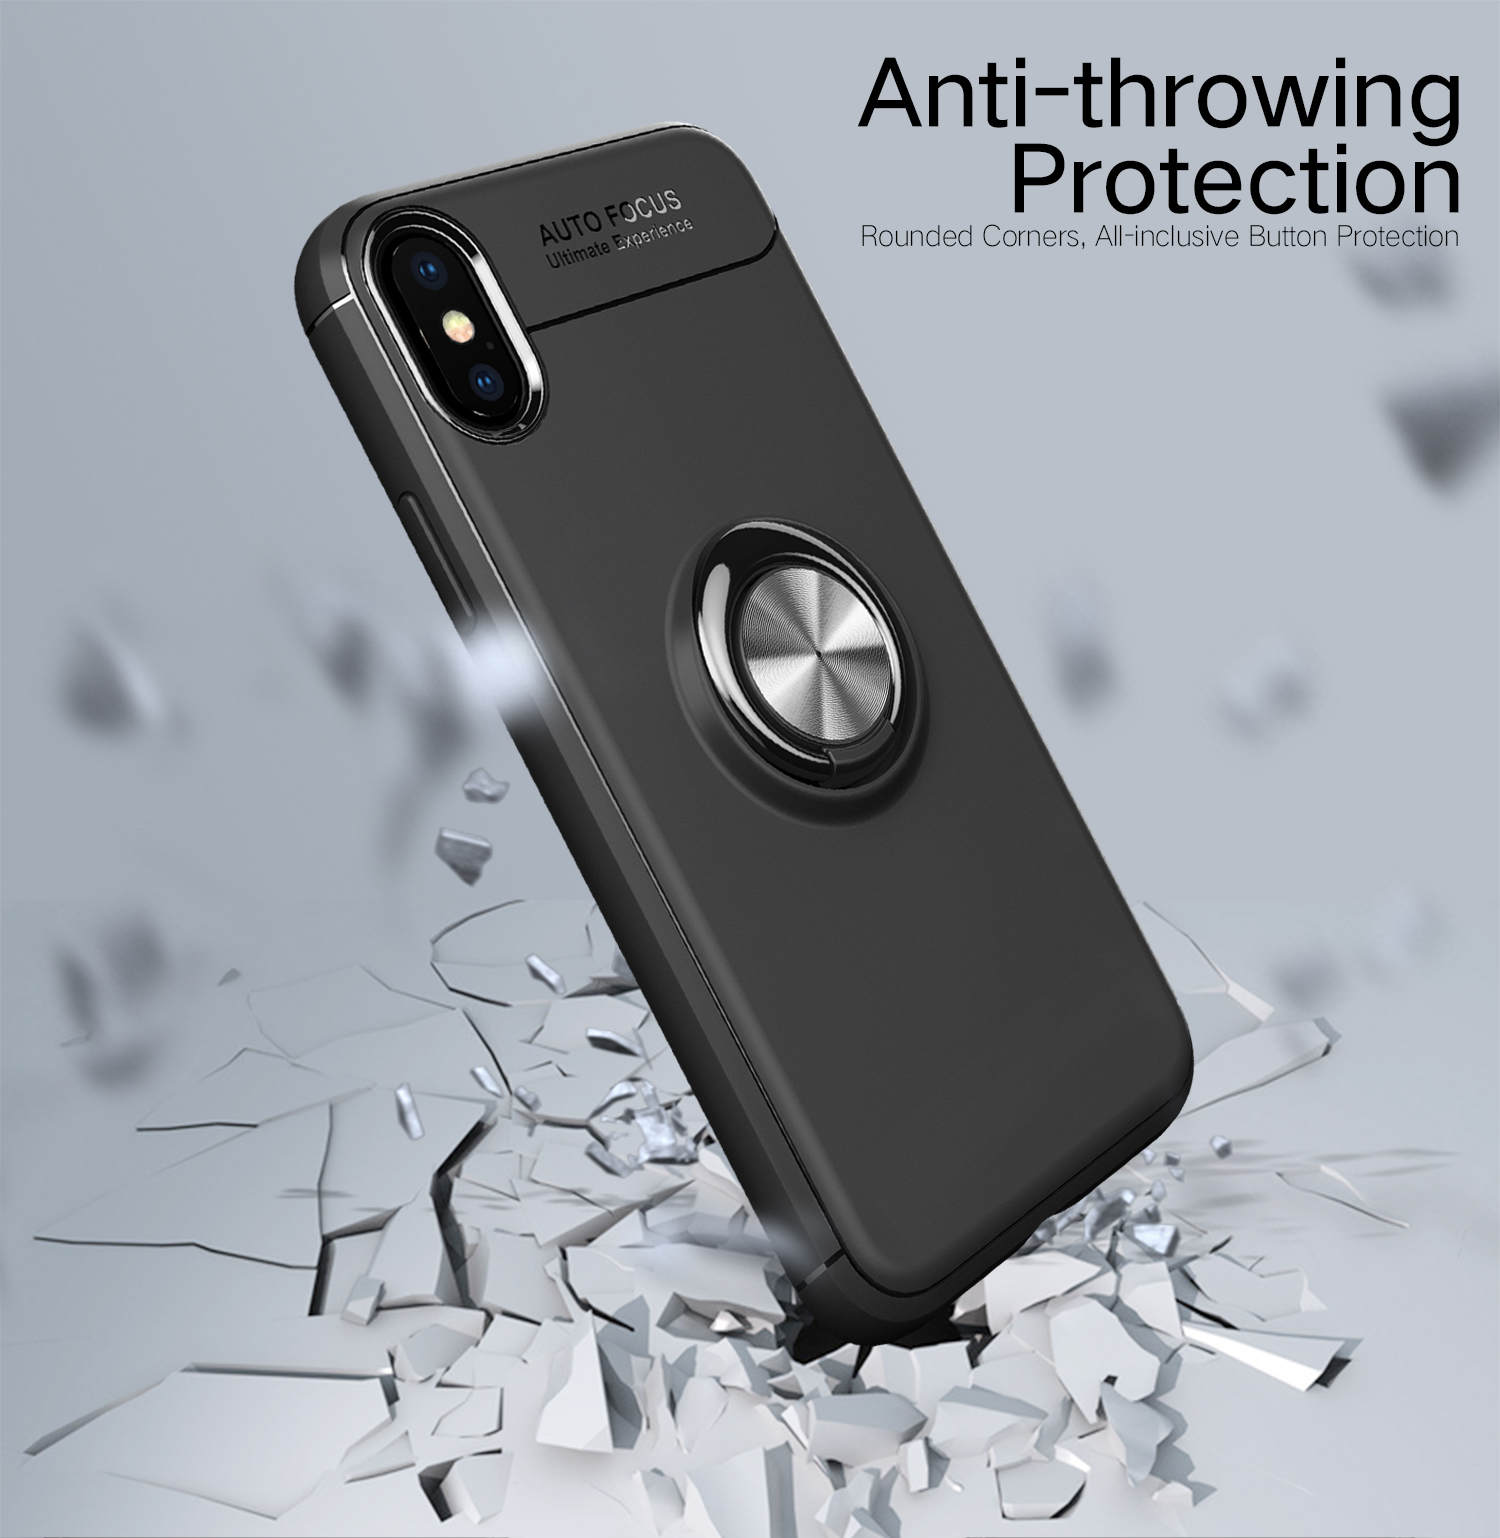 e563f3d54ee833 c-ku protective case for iphone xs max 360º rotating ring grip ...